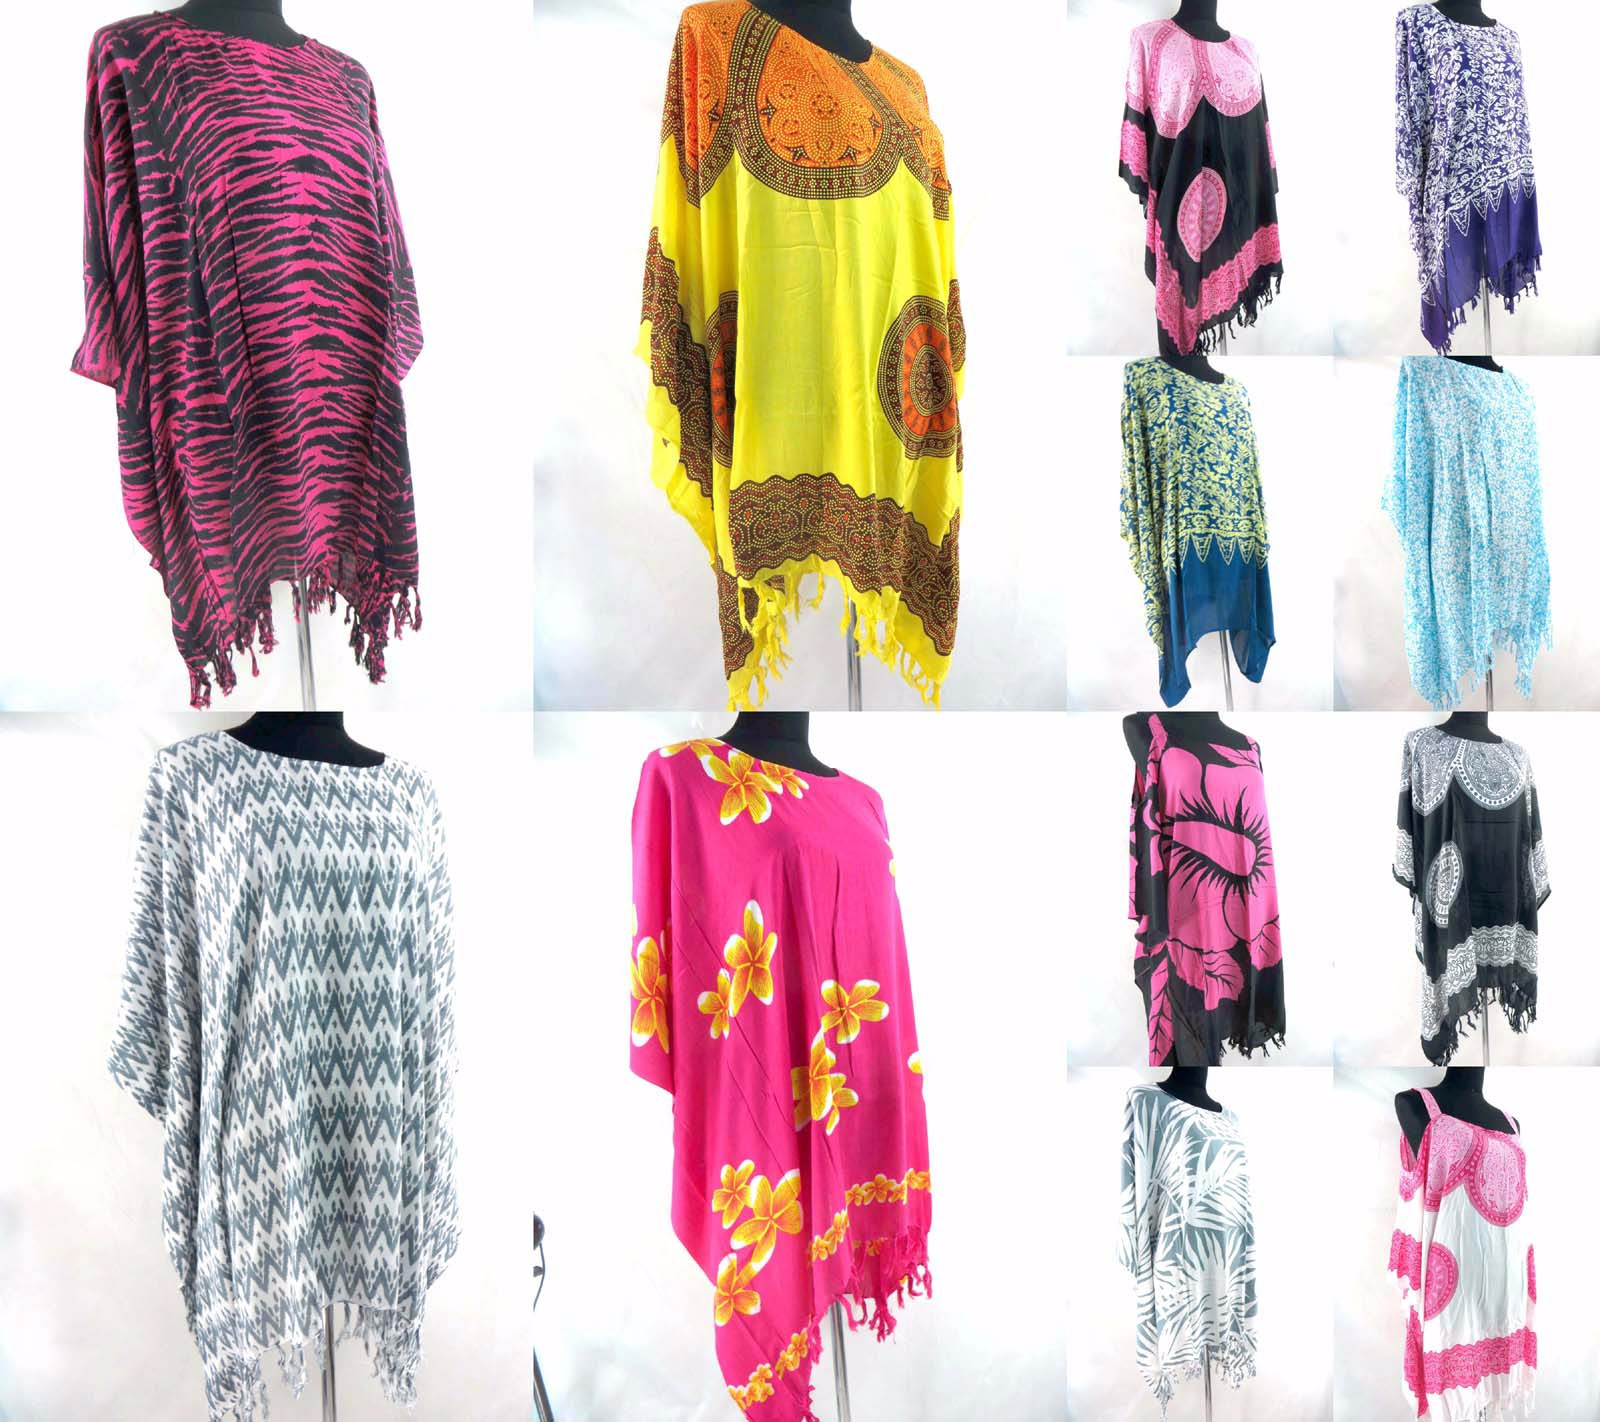 fa98aae445e Details about US SELLER- 10pcs wholesale plus size kaftan top dress cruise  wear for ladies